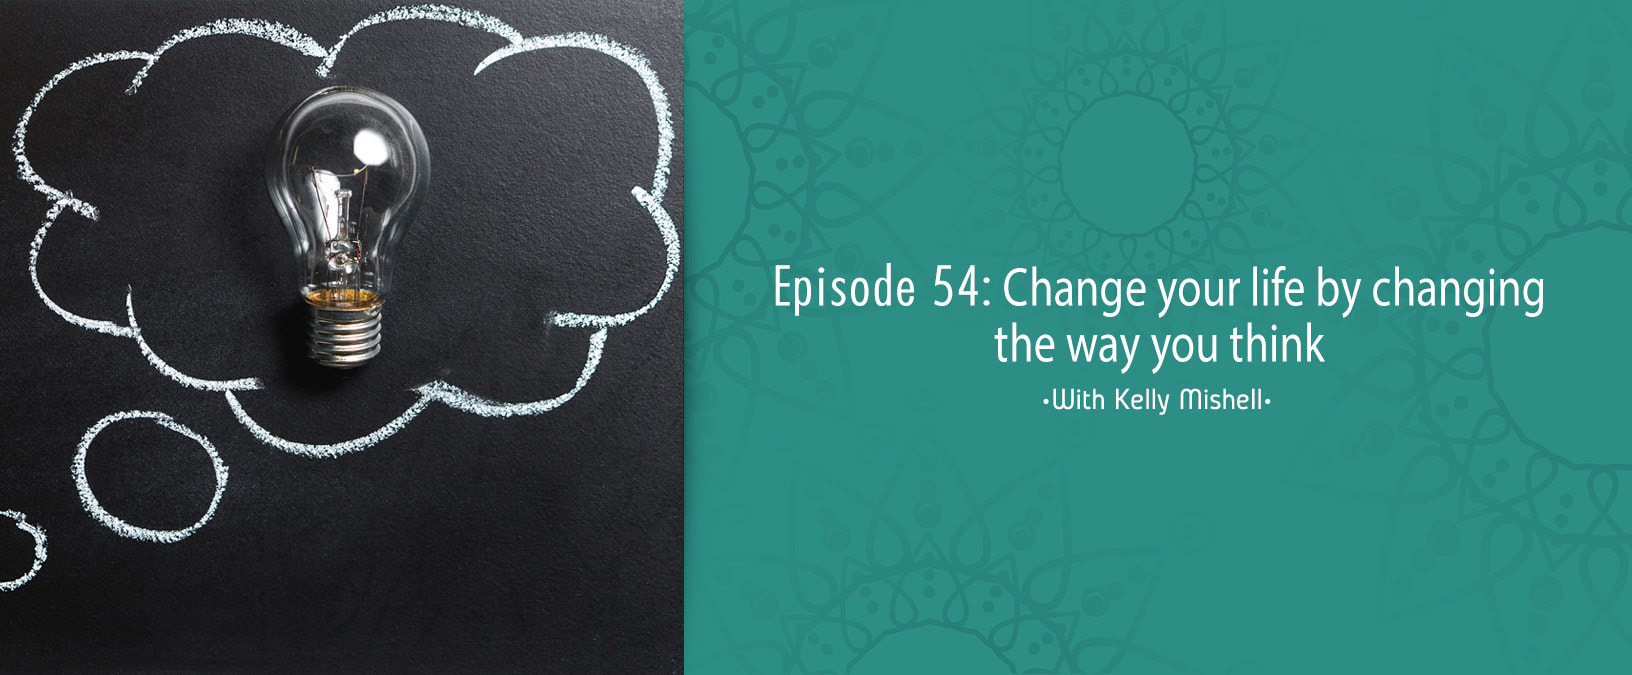 Change your life by changing the way you think